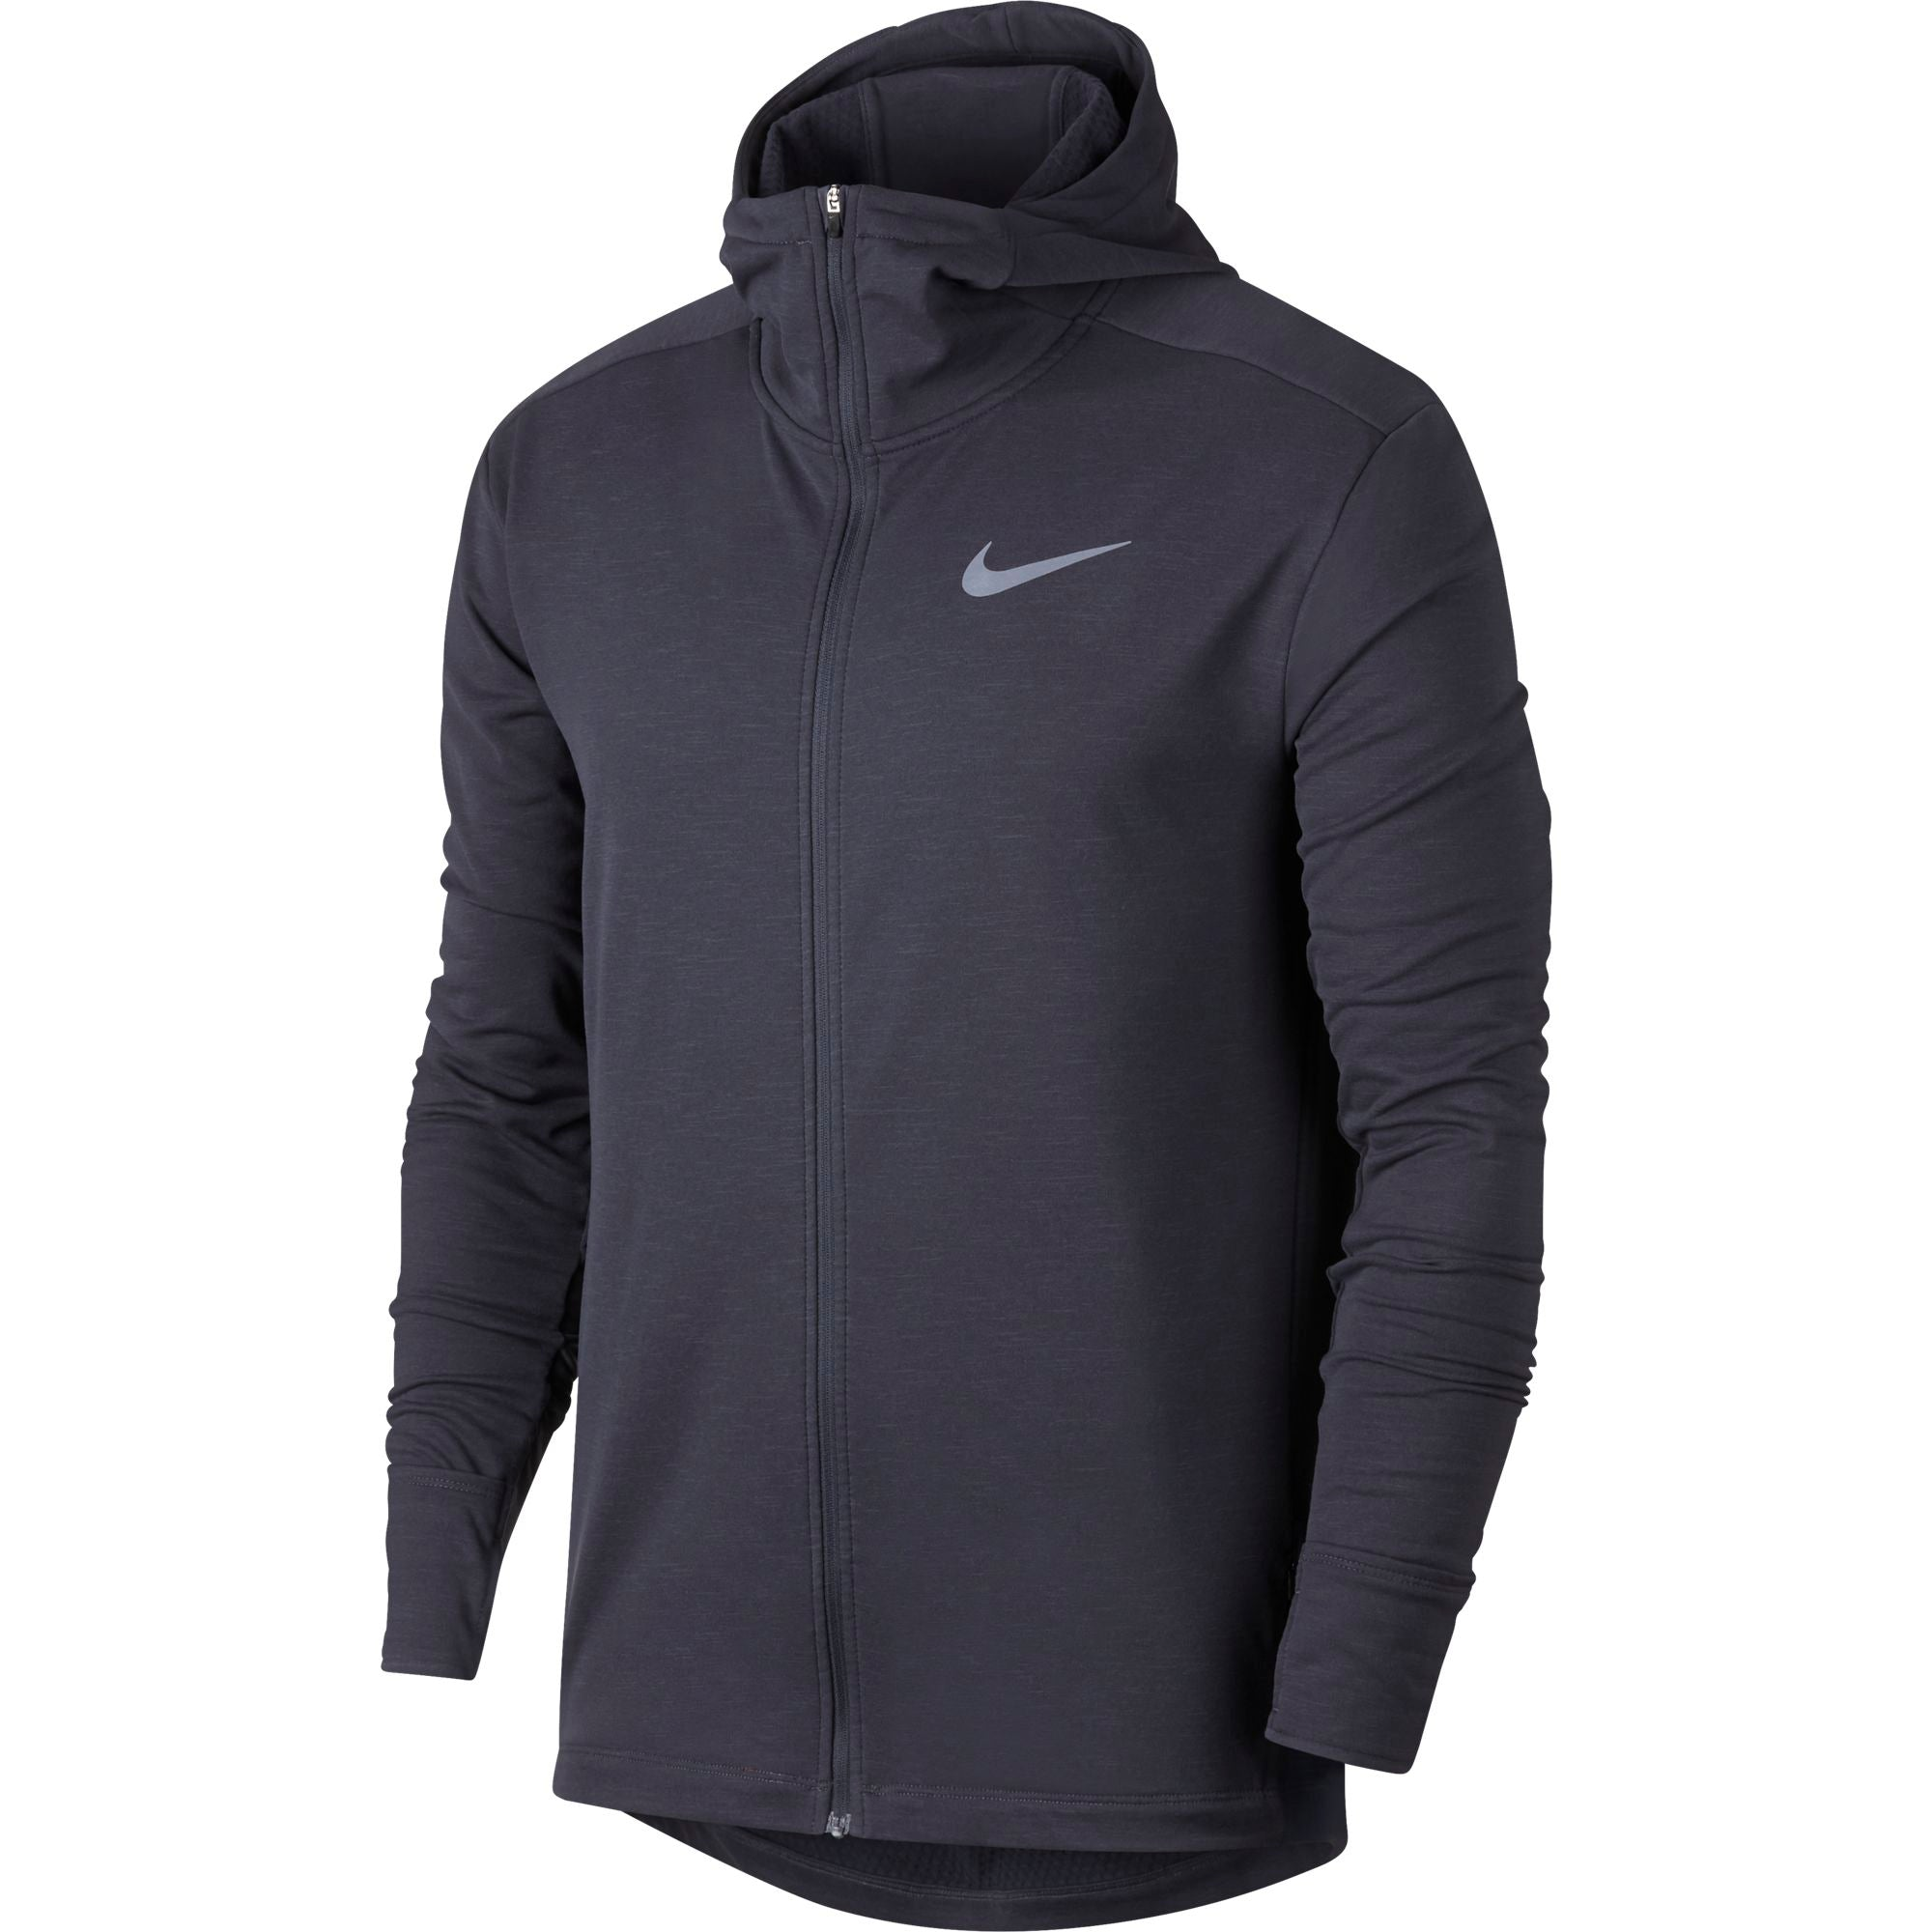 3158df387f6 Men s Sphere Element Hoodie 2.0 Full-Zip - Griditon   Obsidian – Gazelle  Sports